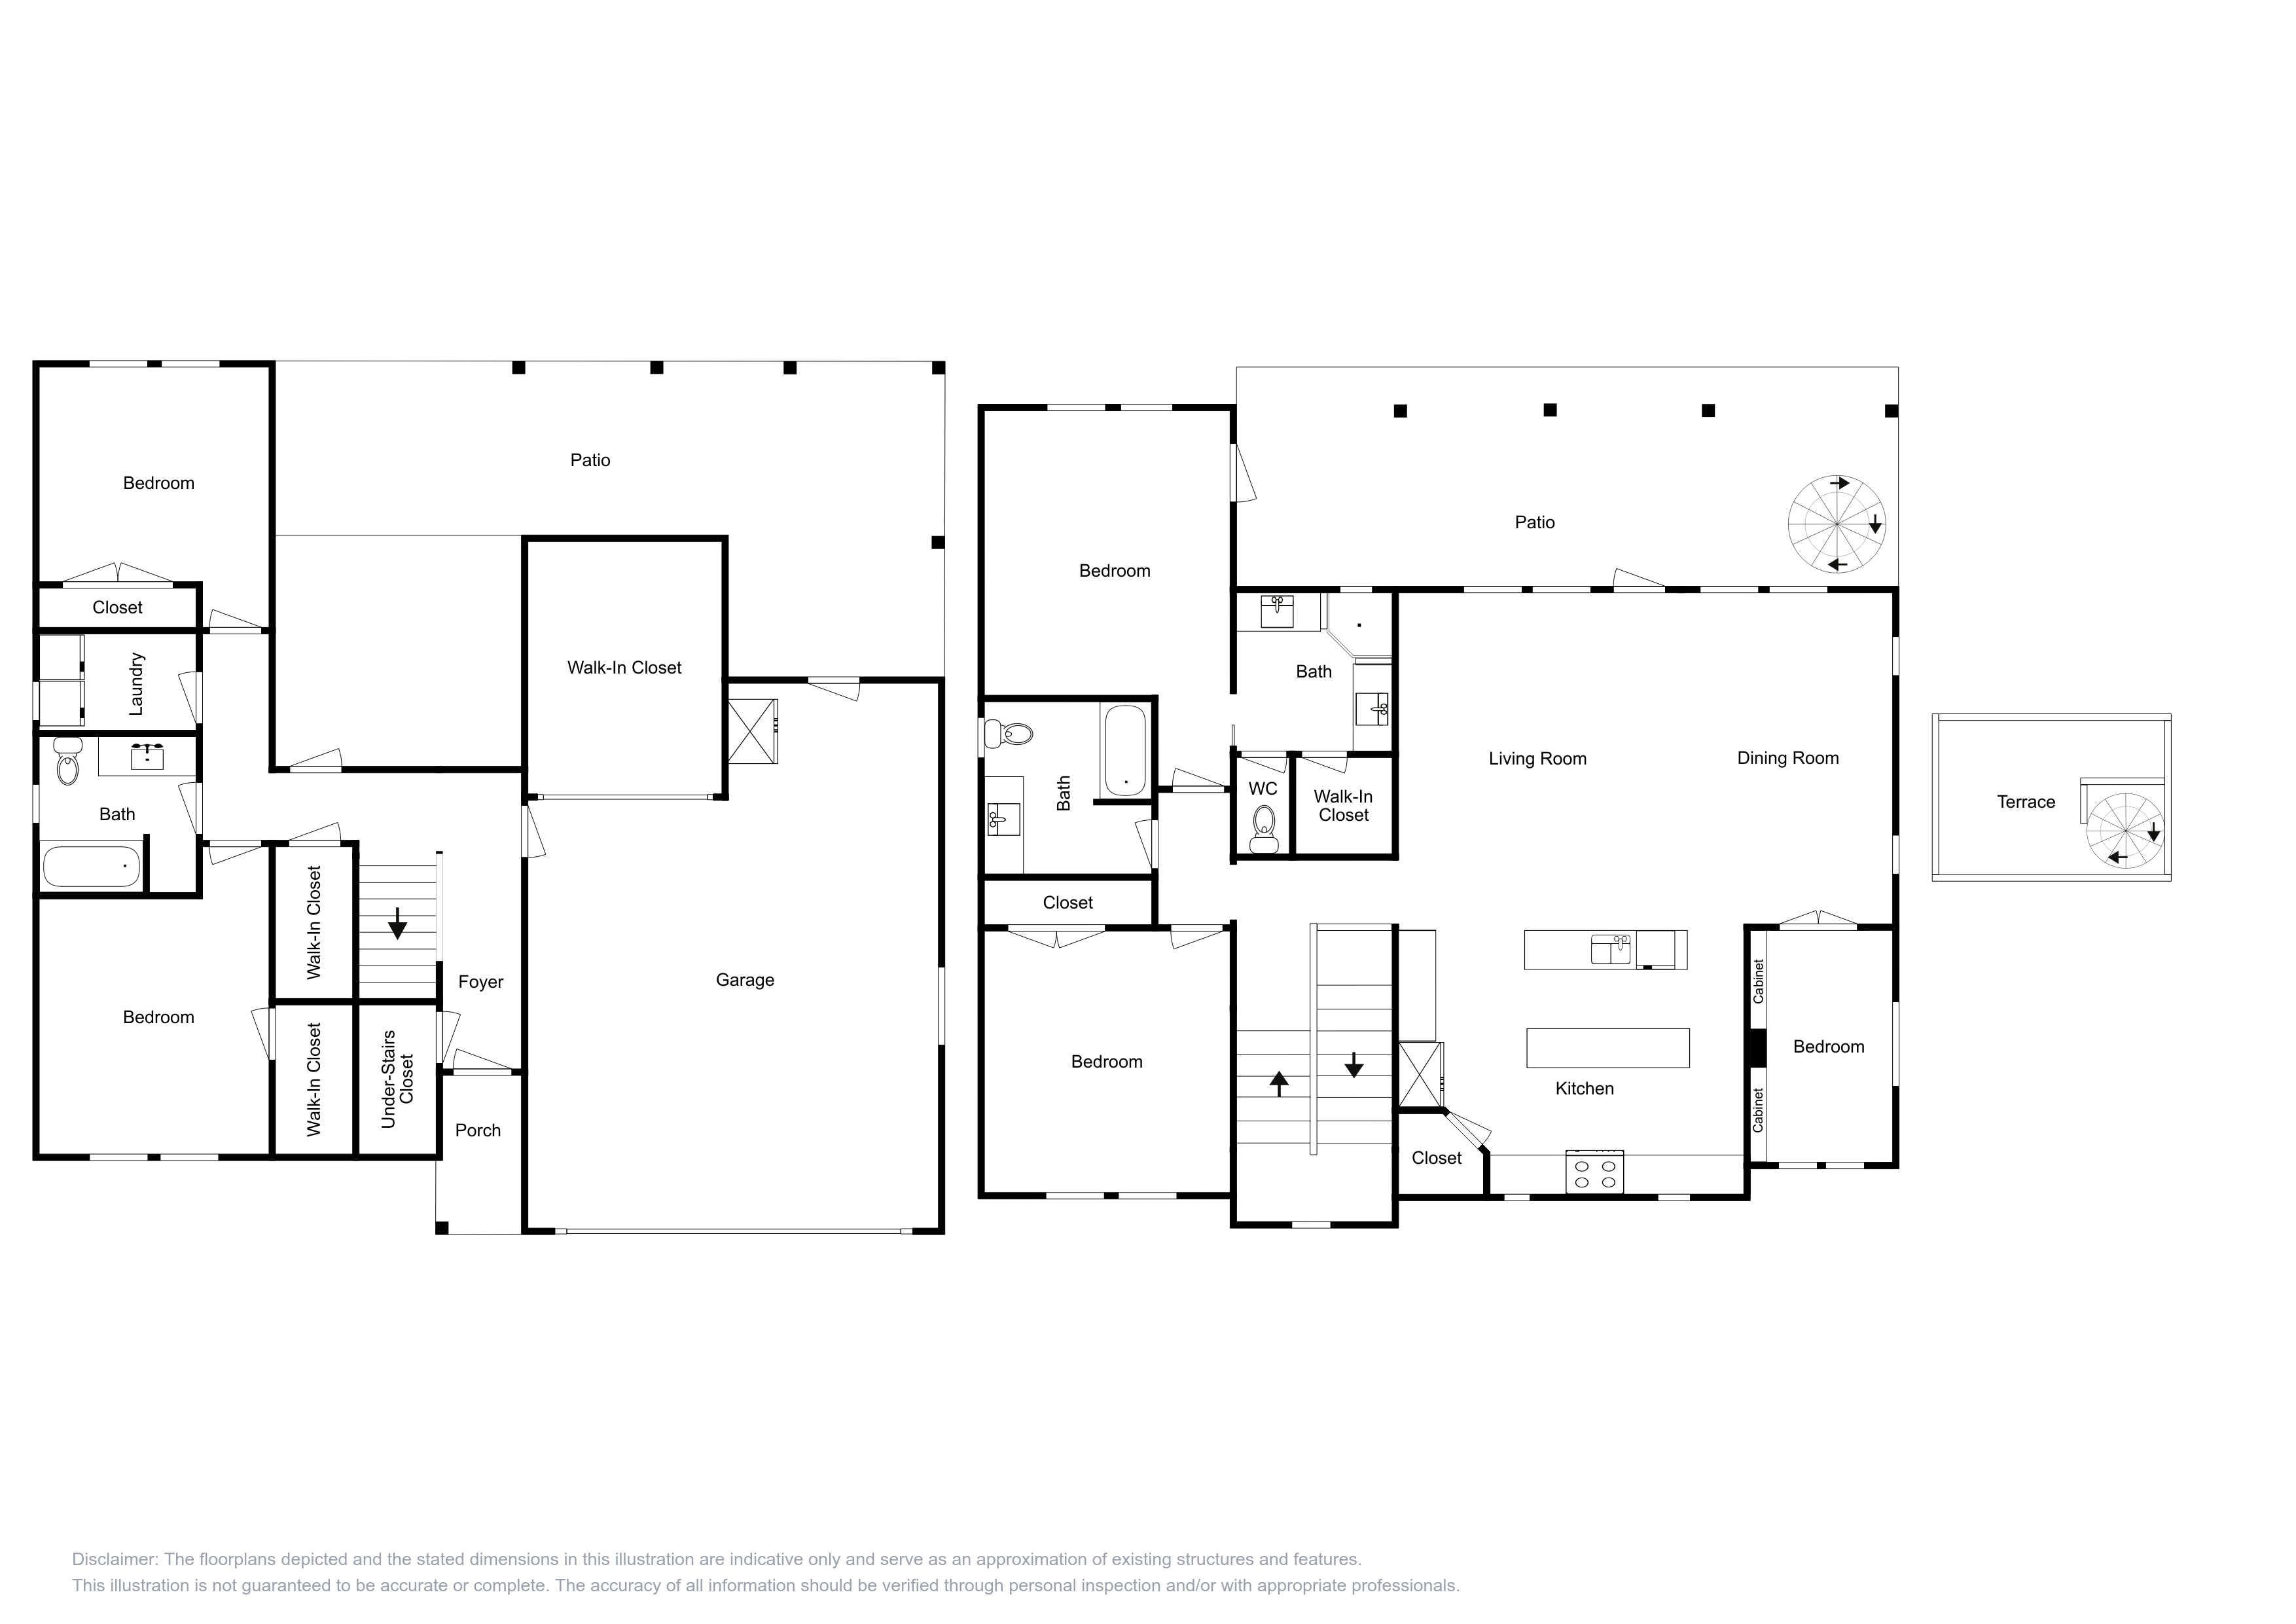 Your 3-story rental's expansive layout.